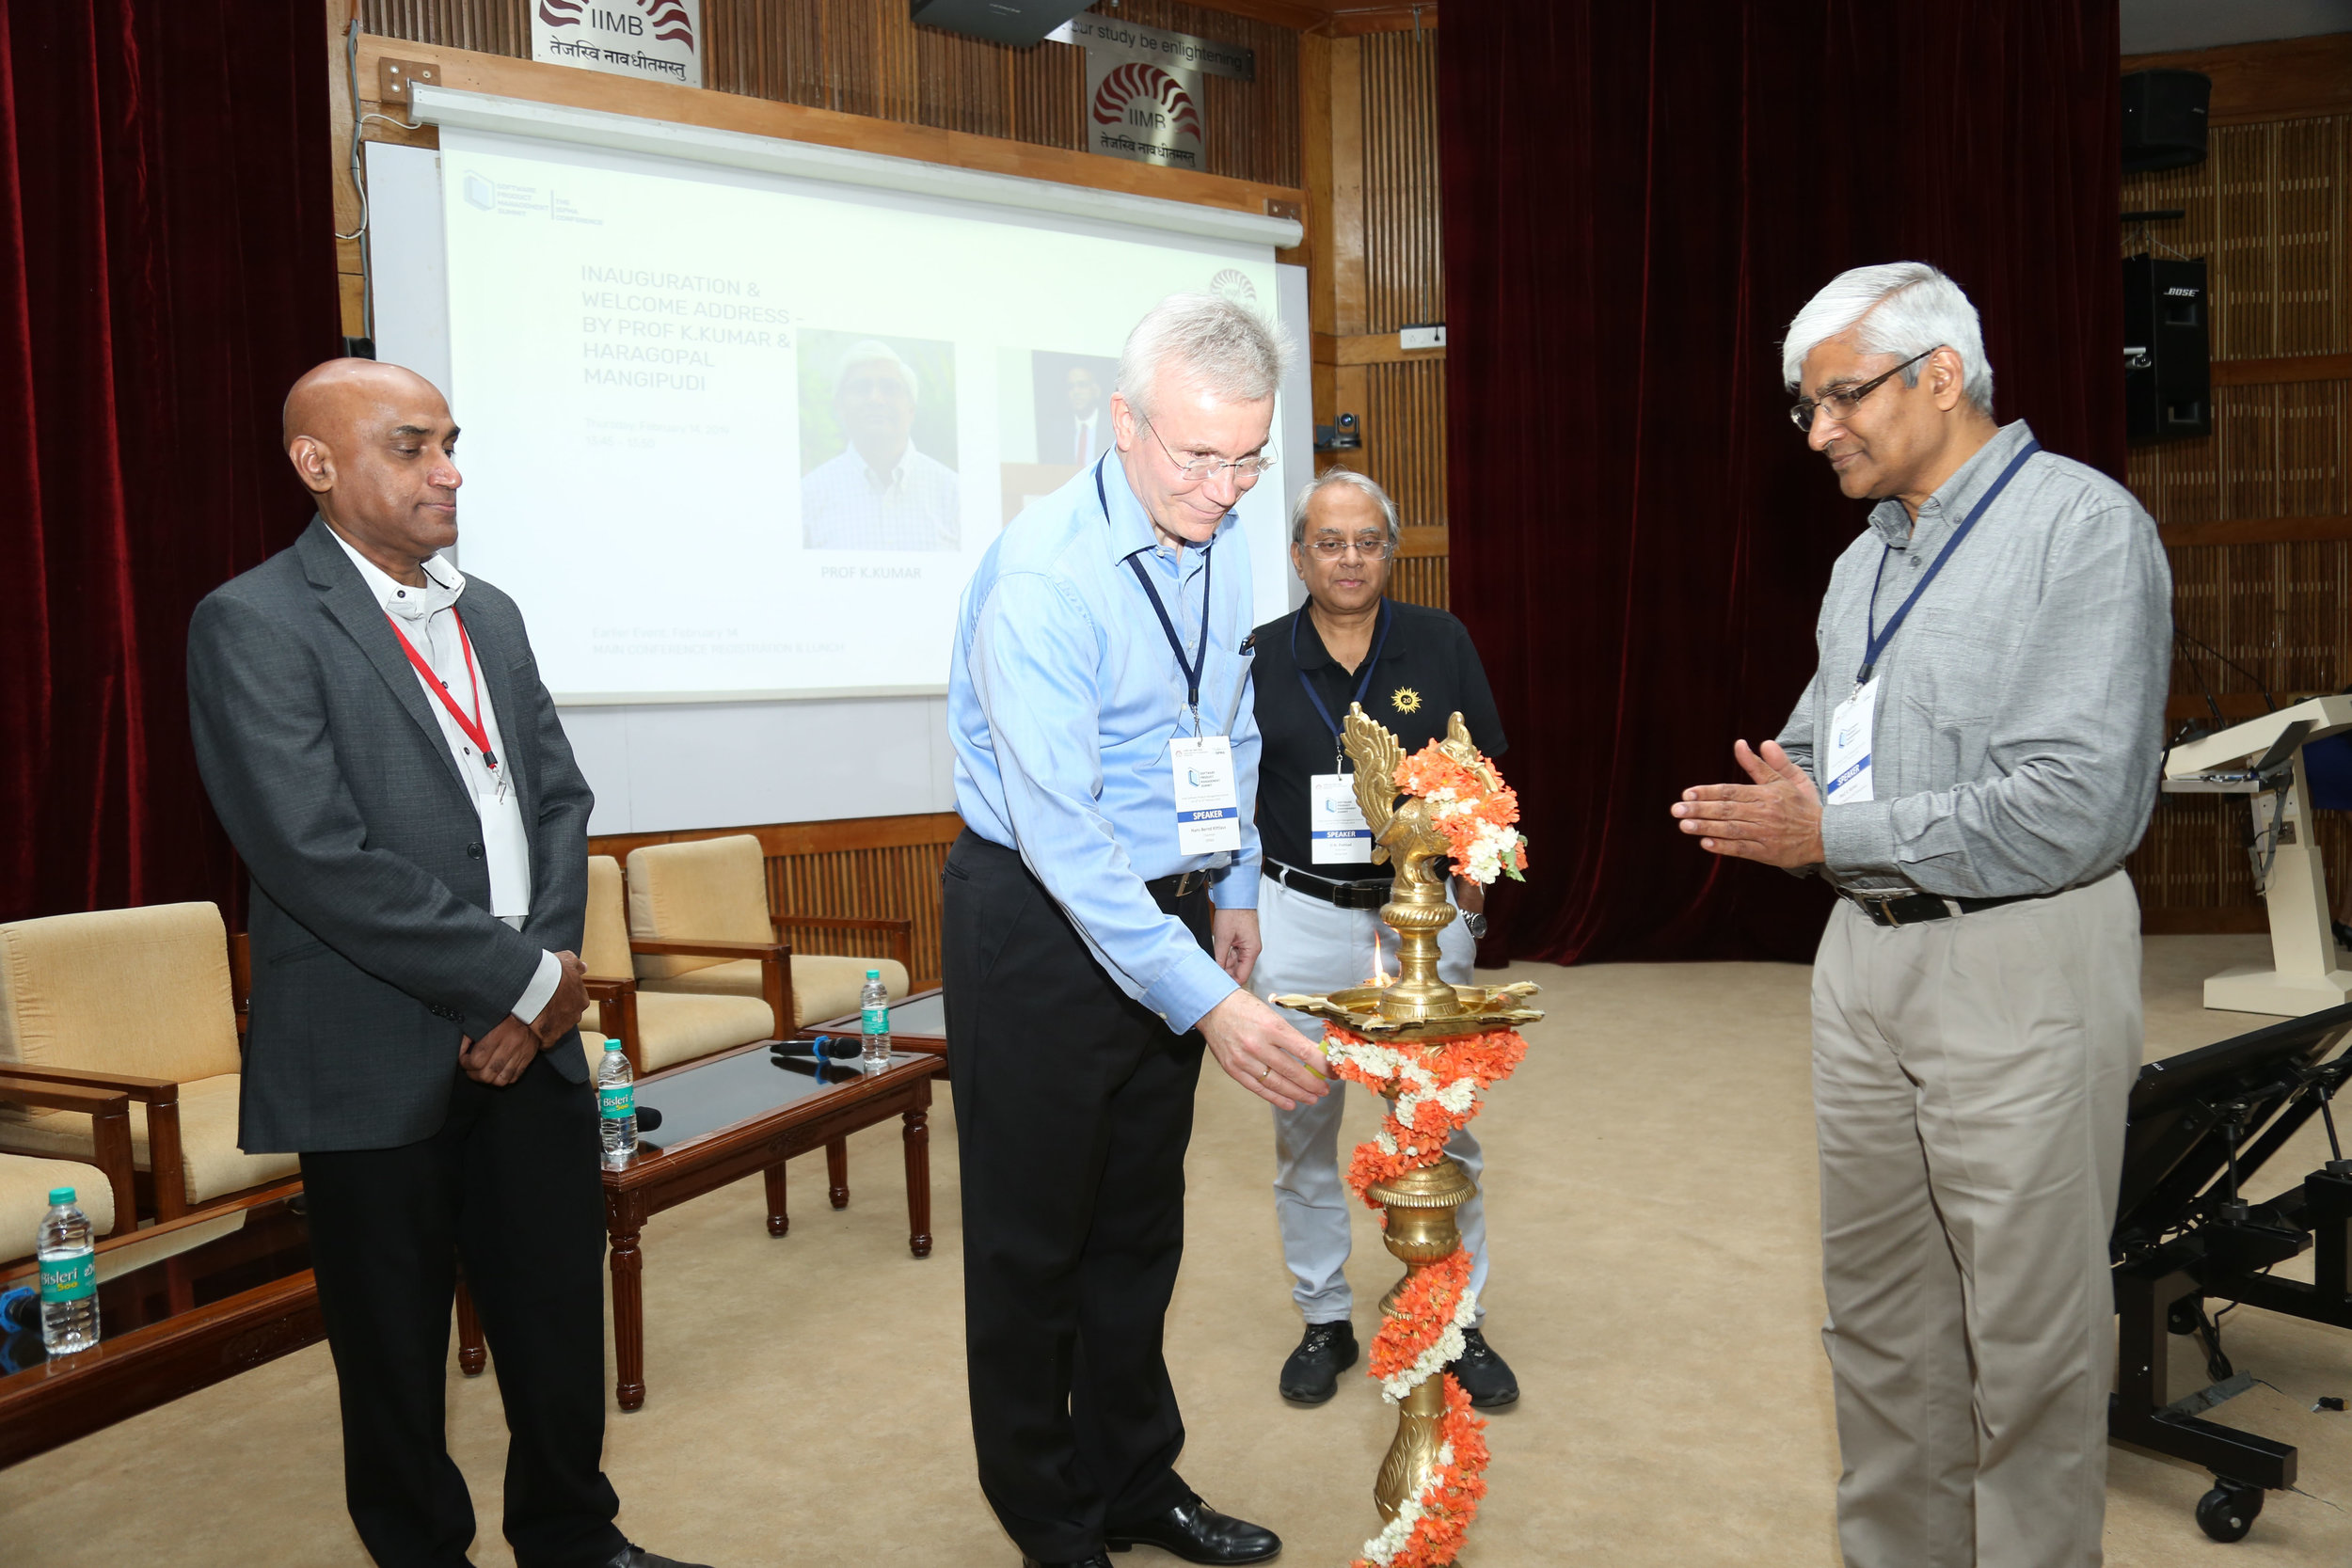 INAUGURATION OF INDIA SPM SUMMIT 2019 BY HANS- BERND KITTLAUS, D.N PRAHLAD, HARAGOPAL MANGIPUDI, PROF. K. KUMAR